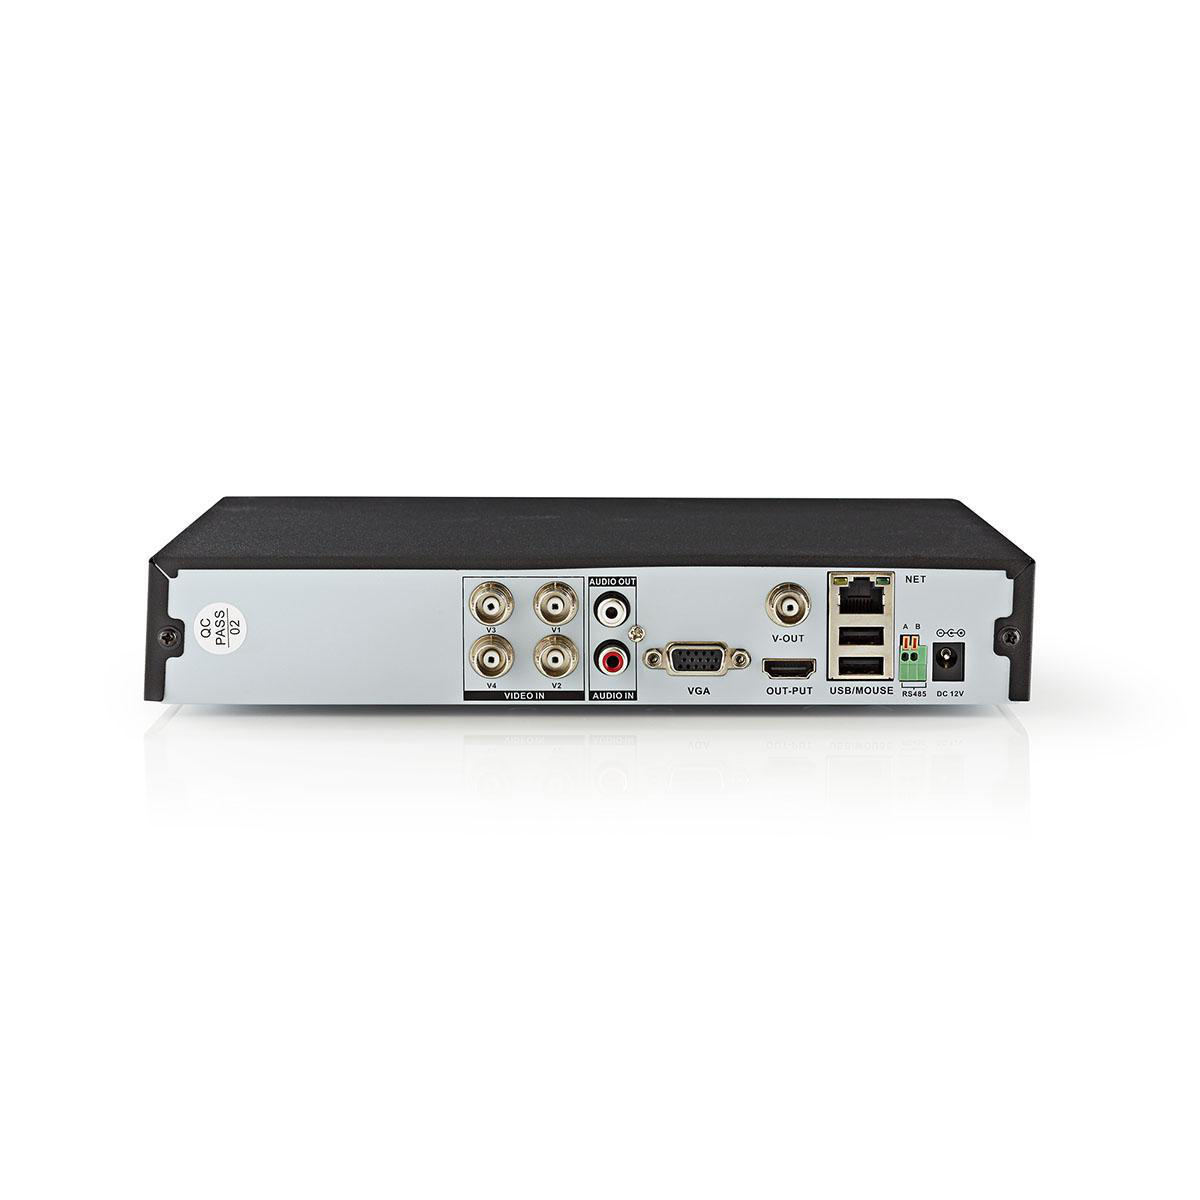 CCTV Security Recorder   4-Channel   Full HD   1 TB HDD